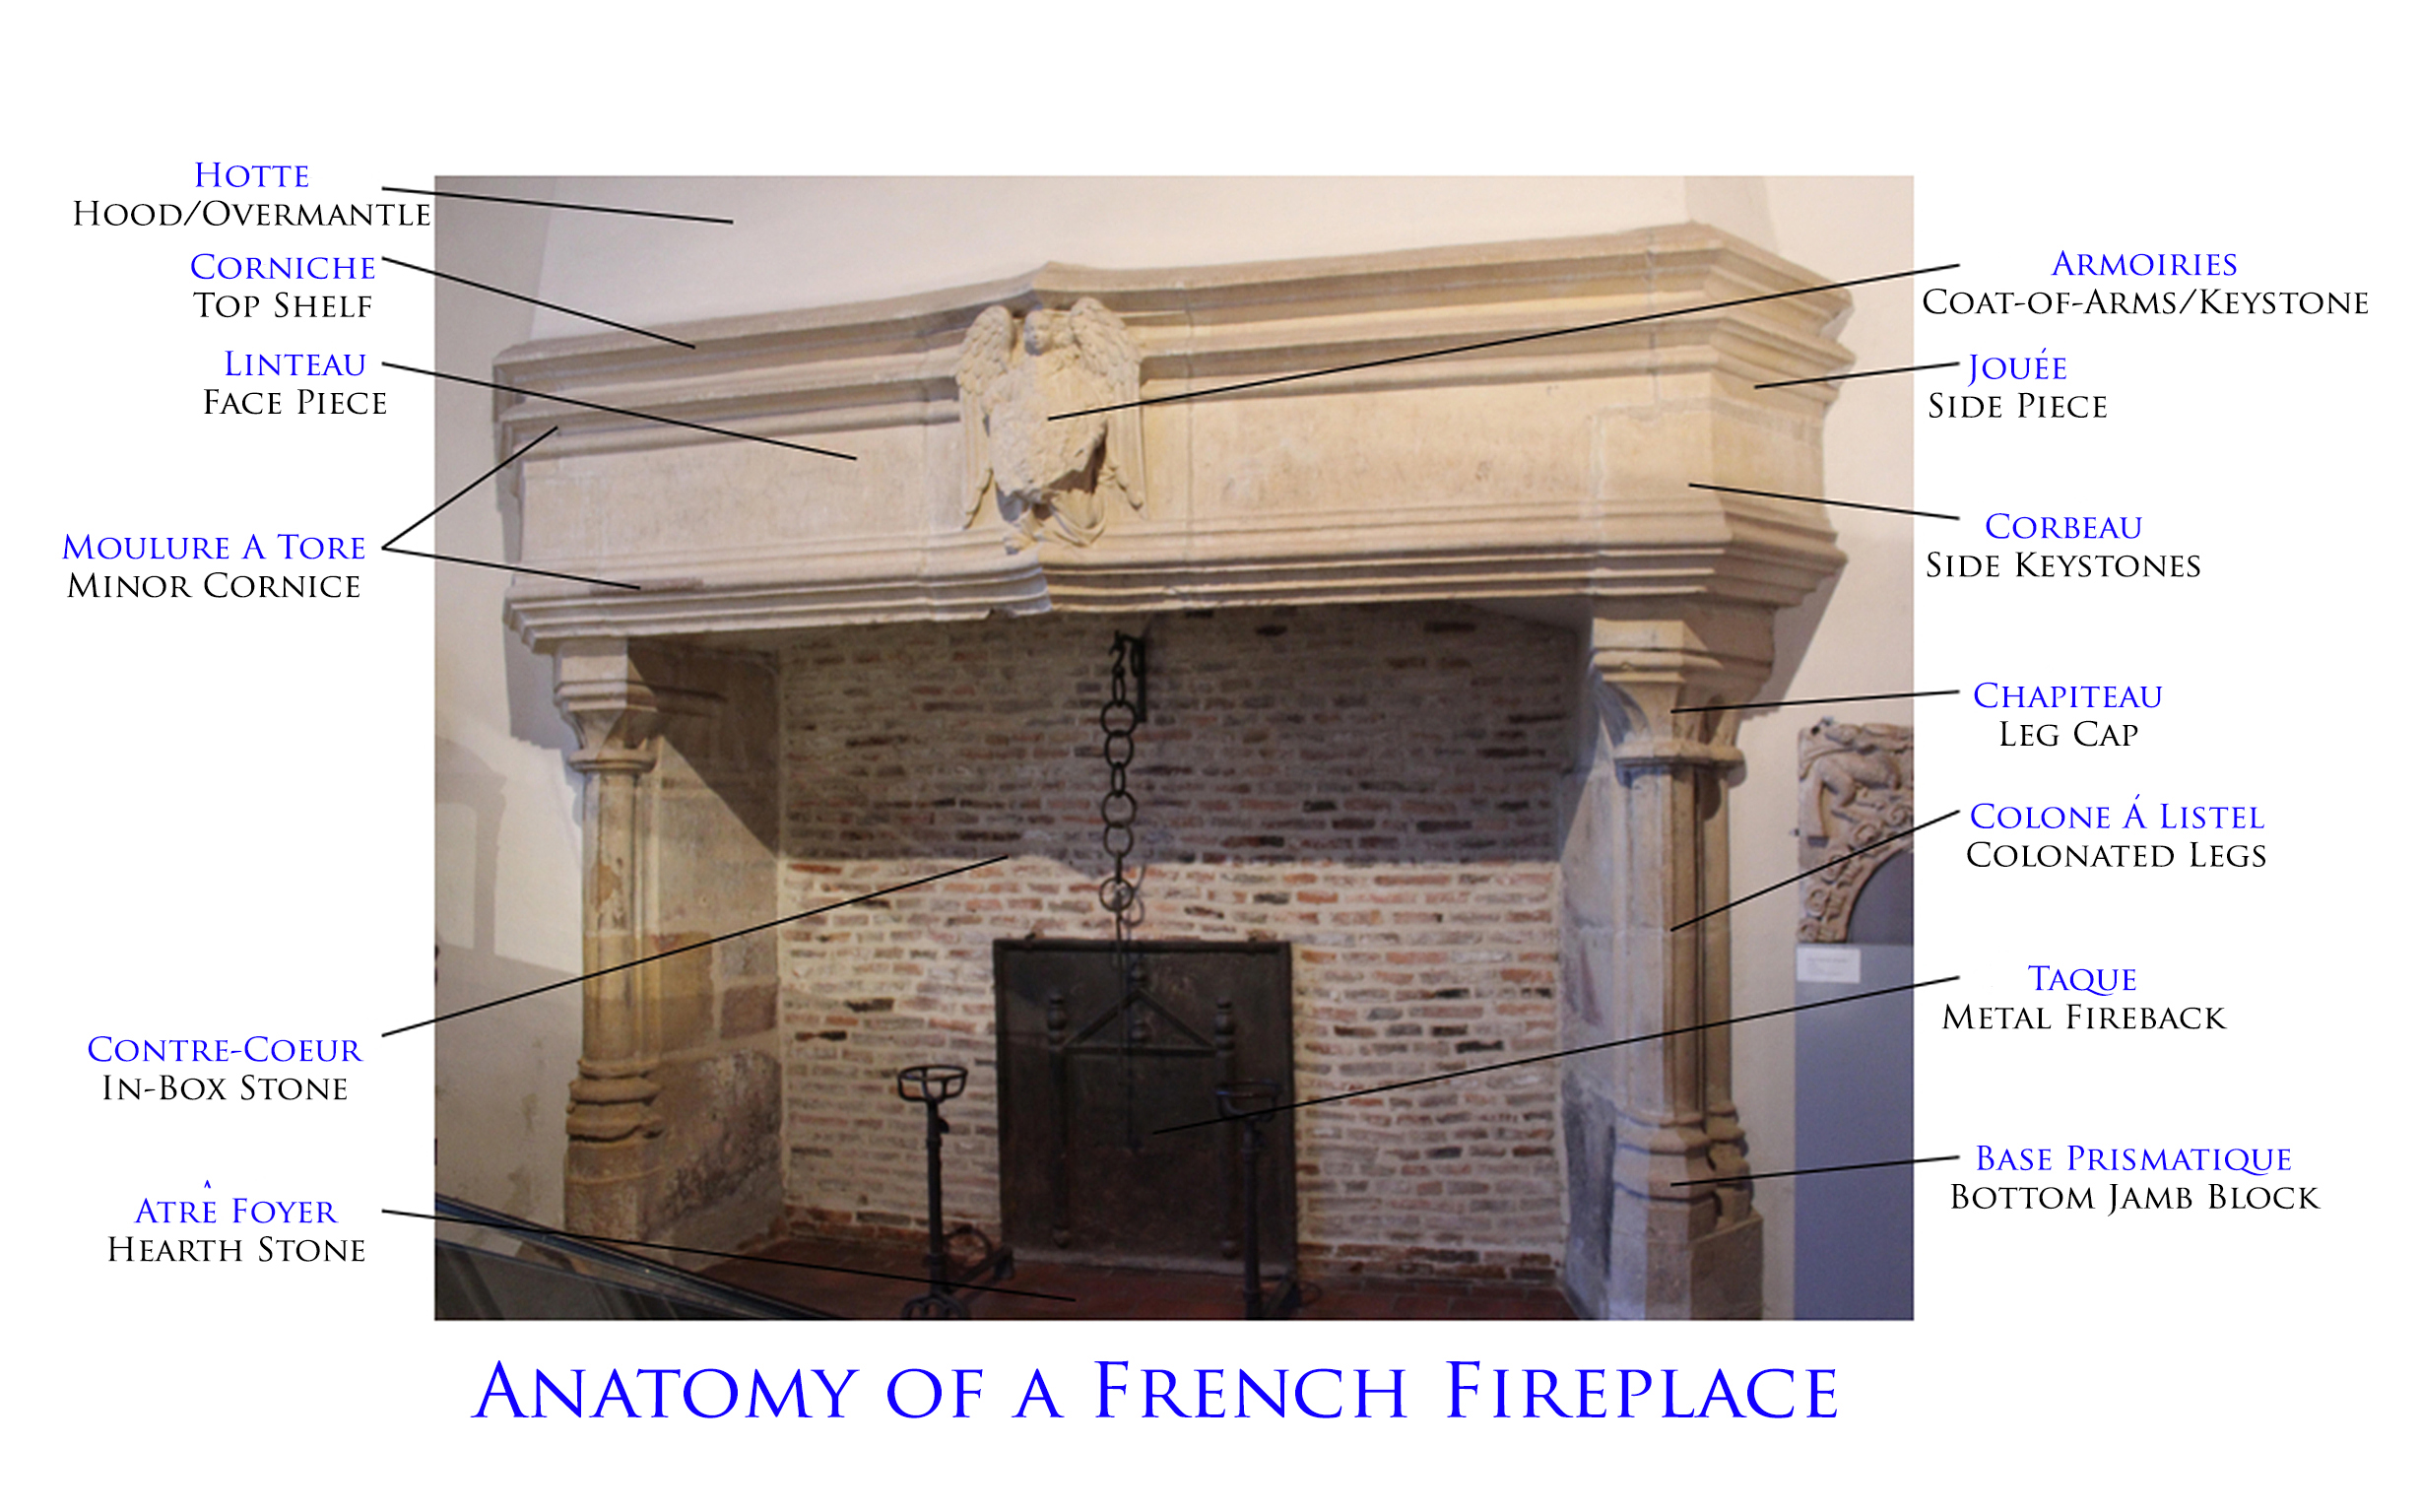 Pardon my French! Anatomy of a Bilingual Fireplace. - Ancient Surfaces